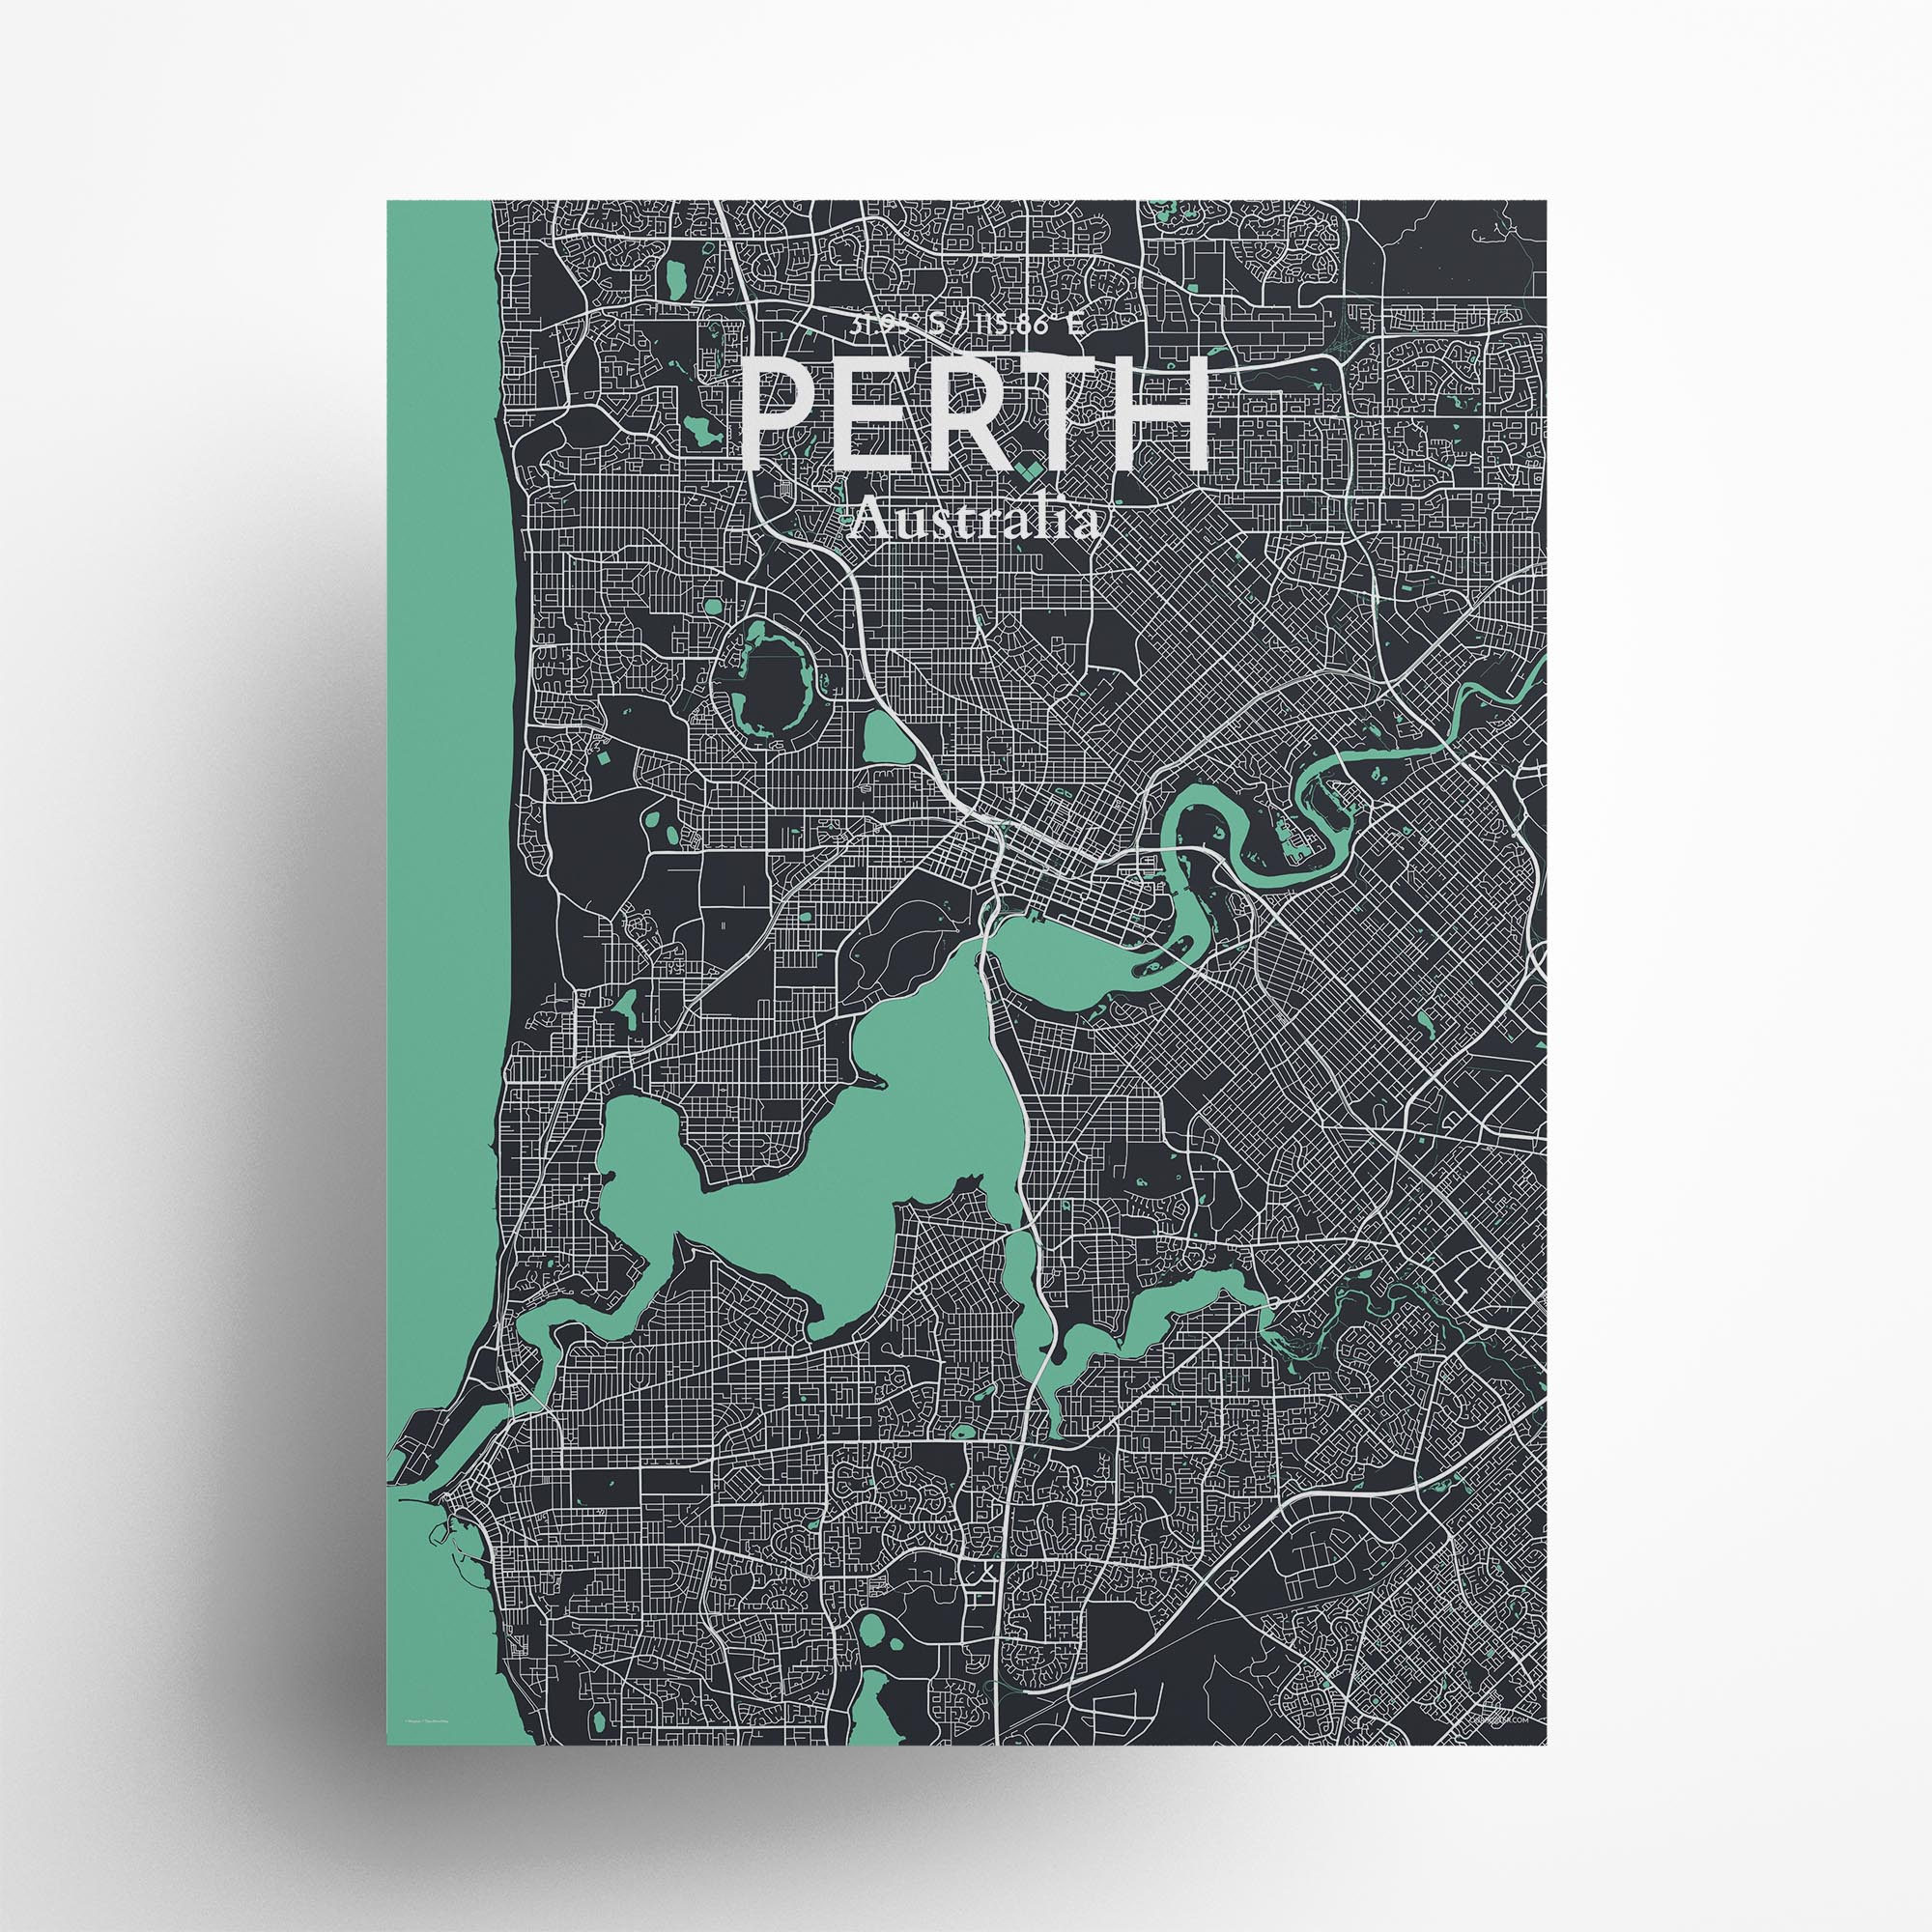 "Perth city map poster in Dream of size 18"" x 24"""